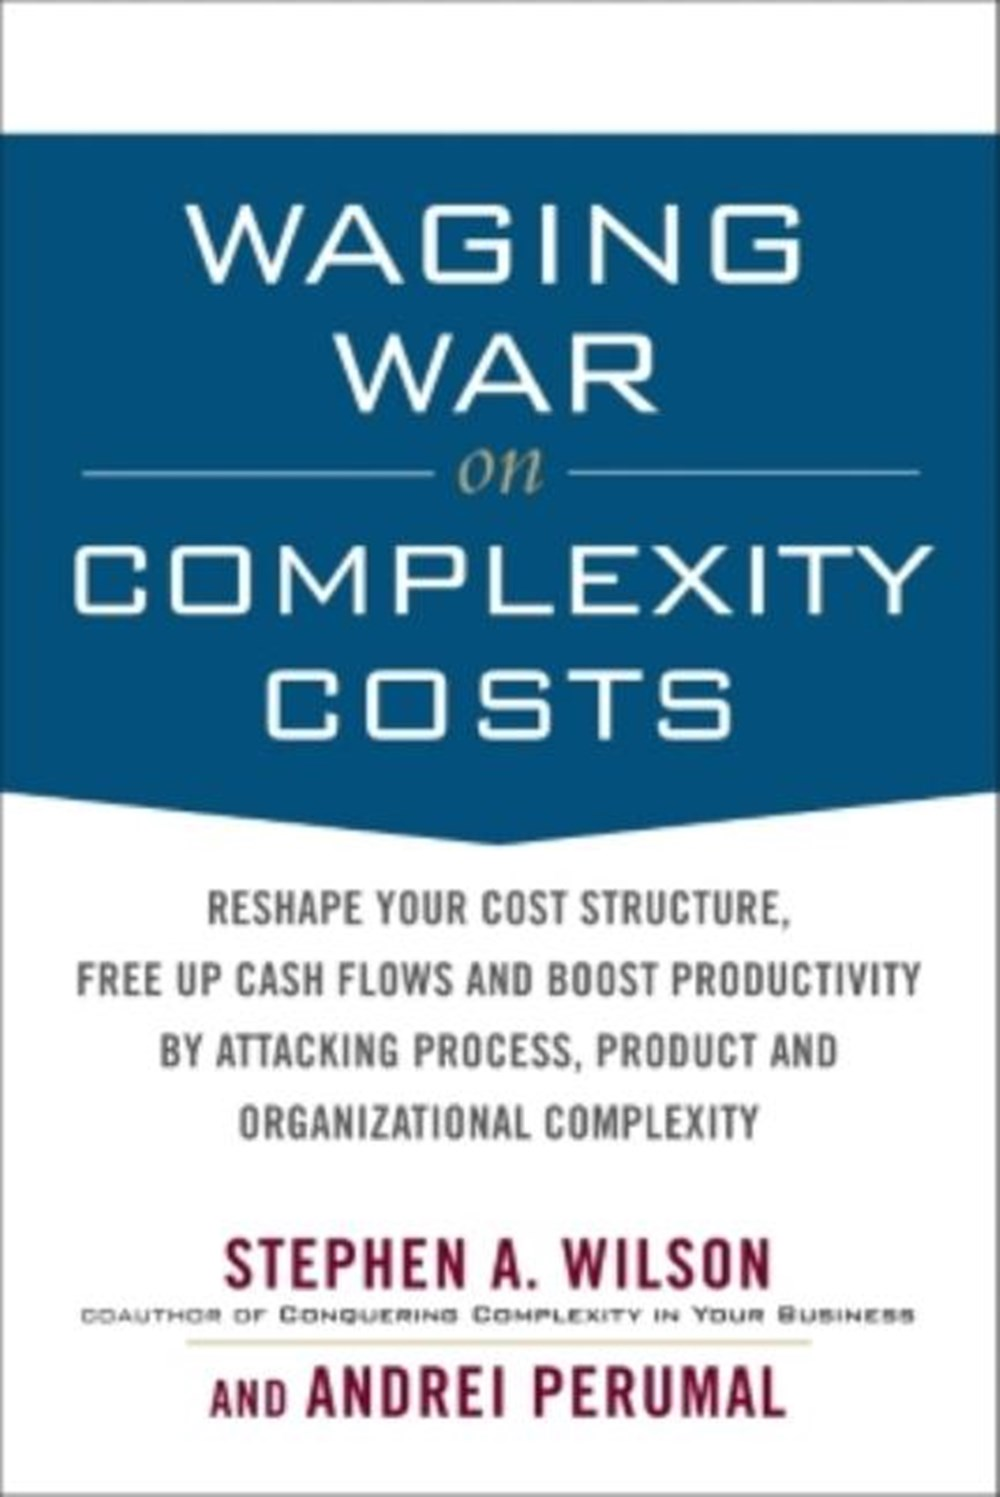 Waging War on Complexity Costs Reshape Your Cost Structure, Free Up Cash Flows and Boost Productivit